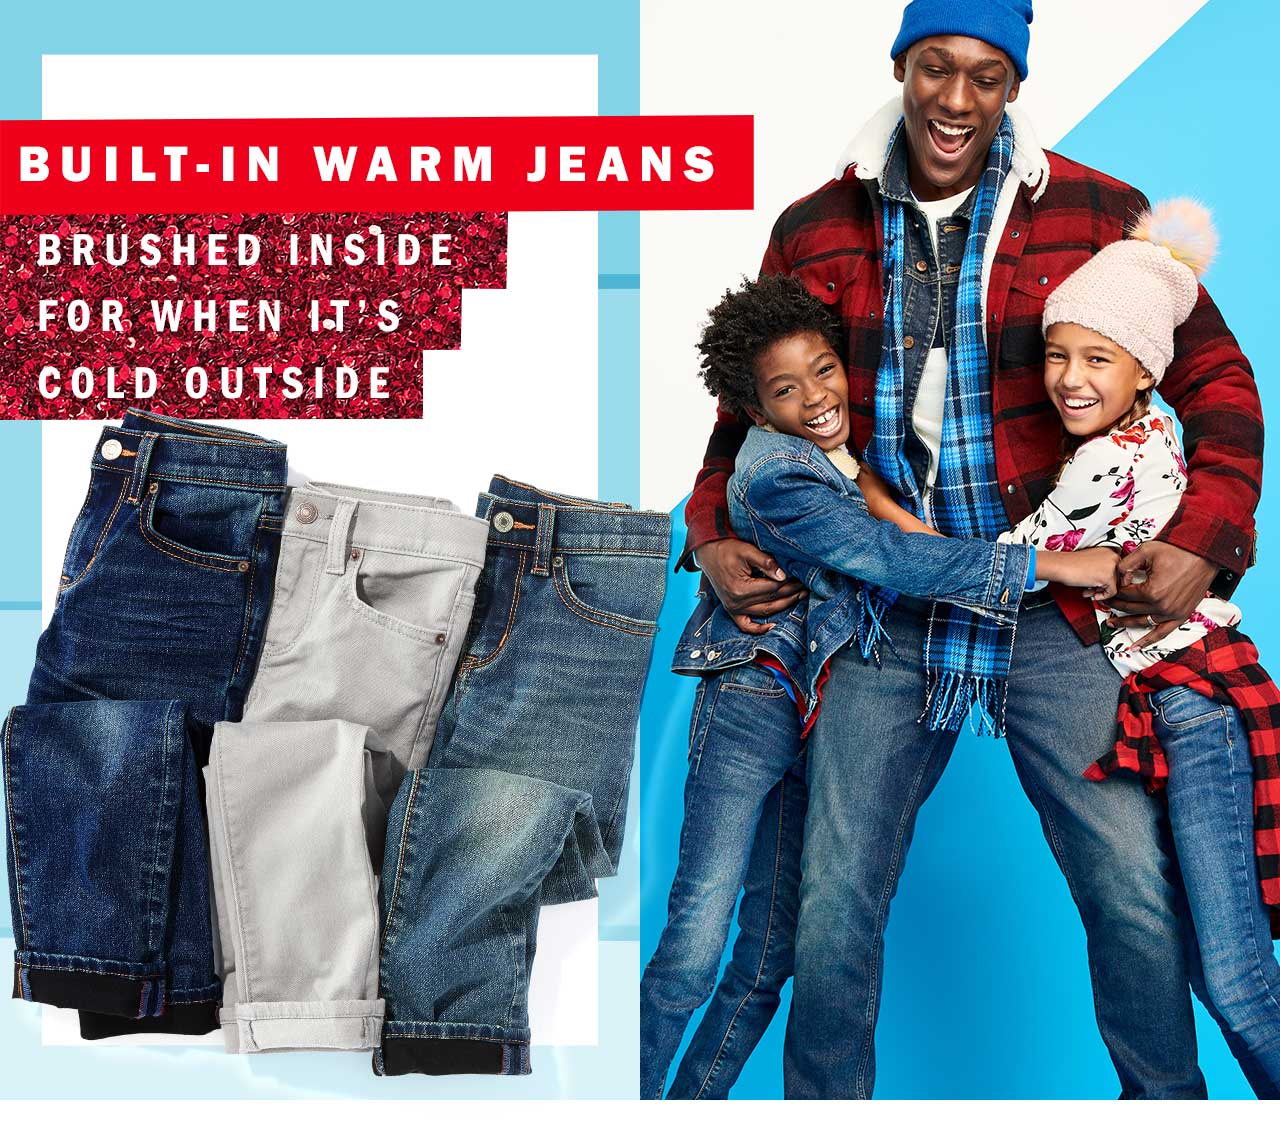 Built-in warm jeans